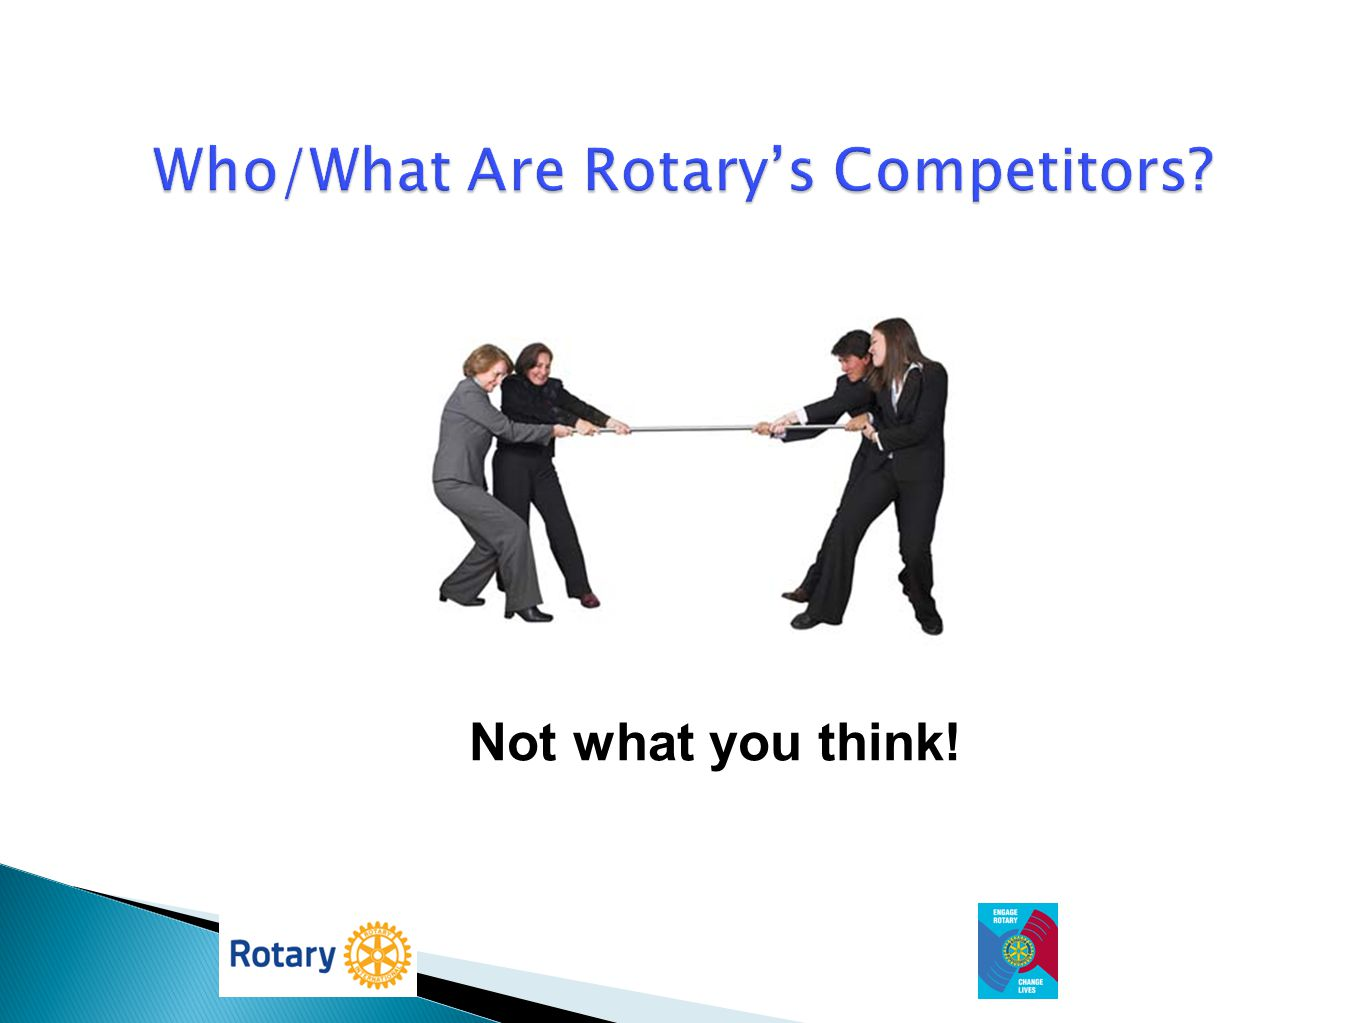 Who/What Are Rotary's Competitors